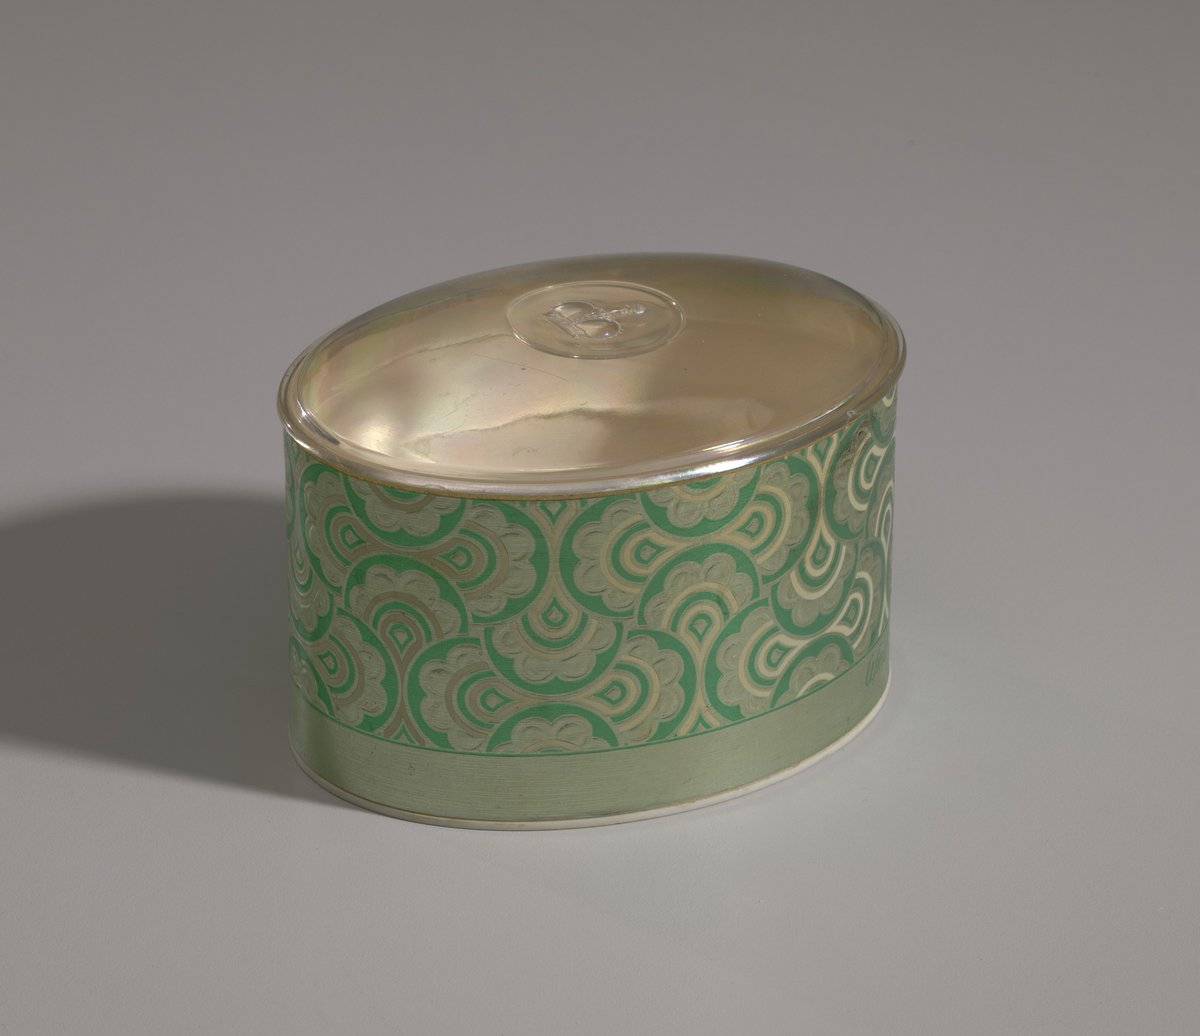 Green and gold makeup box from Mae's Millinery Shop, 1941-1994 https://t.co/ZxabtaBEyL #openaccess #museumarchive https://t.co/useFjRinZH